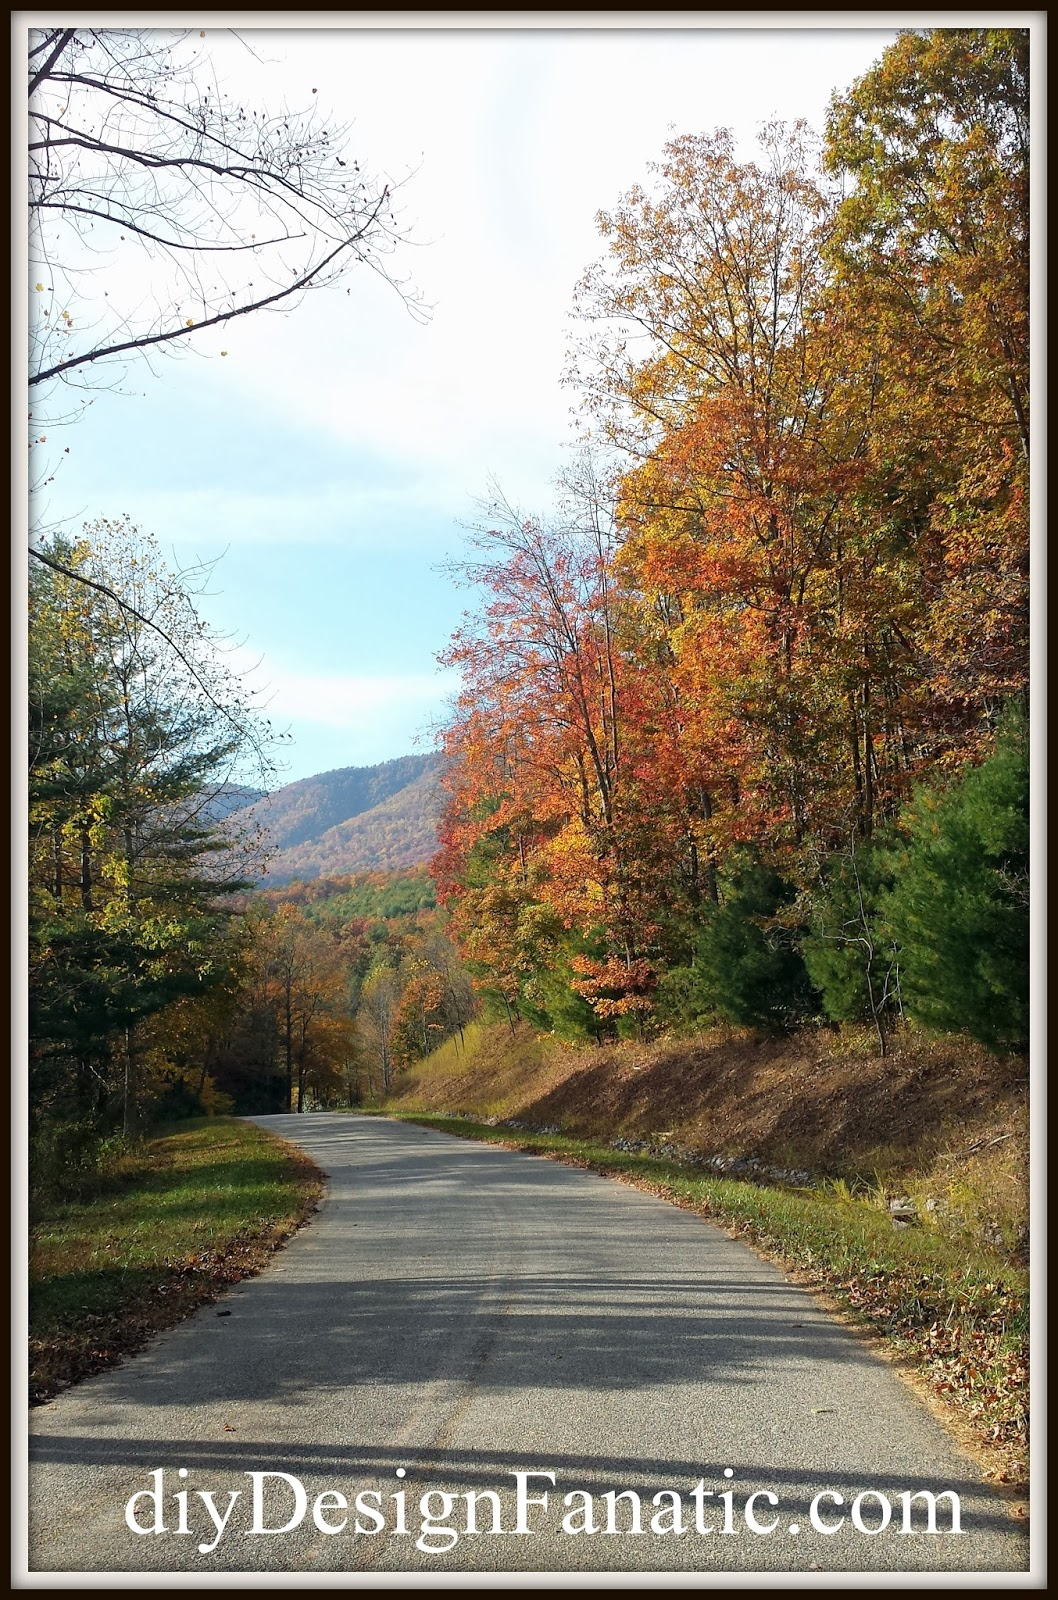 seize the day, fall colors, mountain road